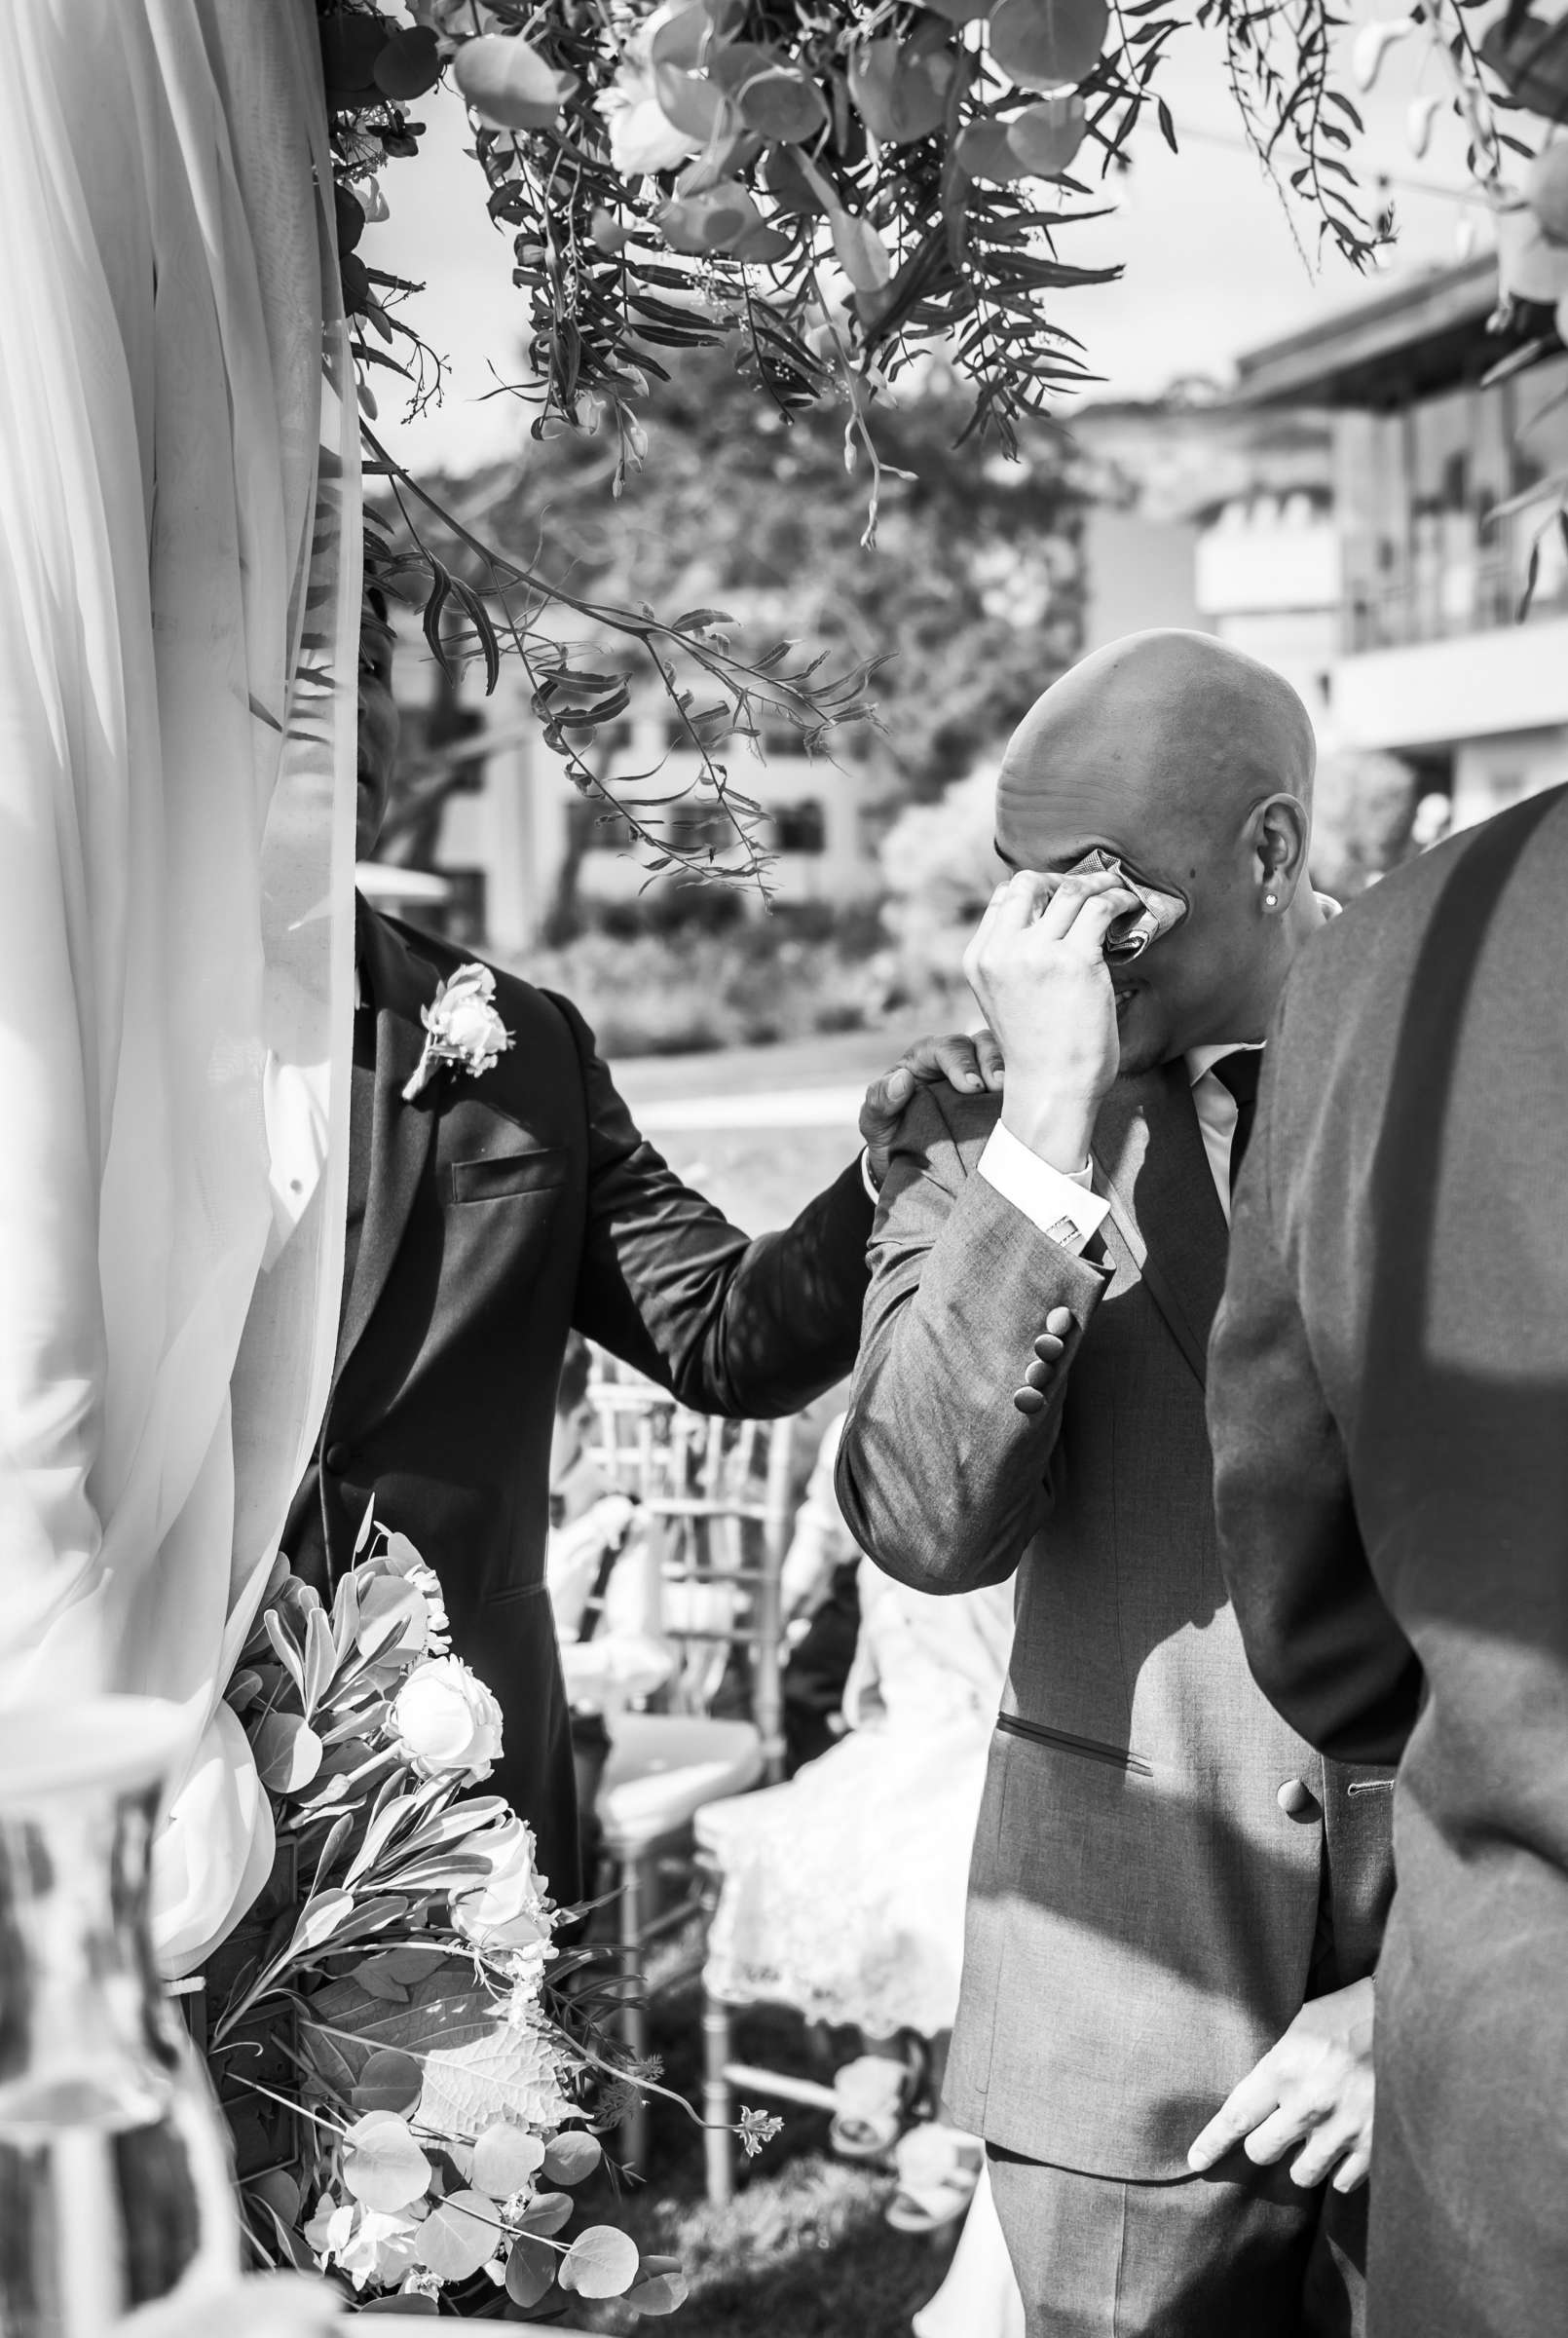 Scripps Seaside Forum Wedding coordinated by Lavish Weddings, Cindy and Justin Wedding Photo #381814 by True Photography